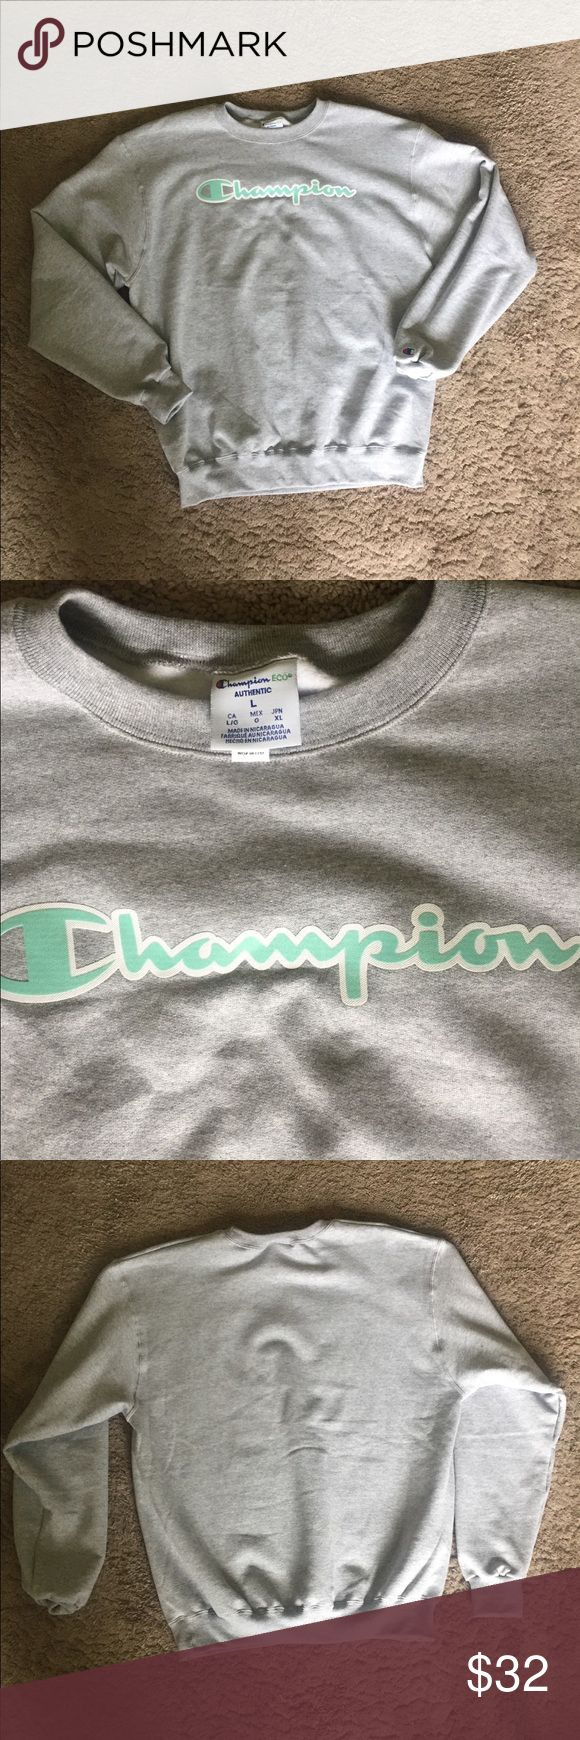 """BRAND NEW Champion sweatshirt 💚💙 This sweatshirt has never been worn 😍 there's just no tags because I was so sure I was gonna wear it. Bought online from Urban Outfitters. Perfect condition. Gray sweatshirt with mint green """"champion"""" on front. Men's large but will definitely fit oversized on a women's small-large. Champion Shirts Sweatshirts & Hoodies"""